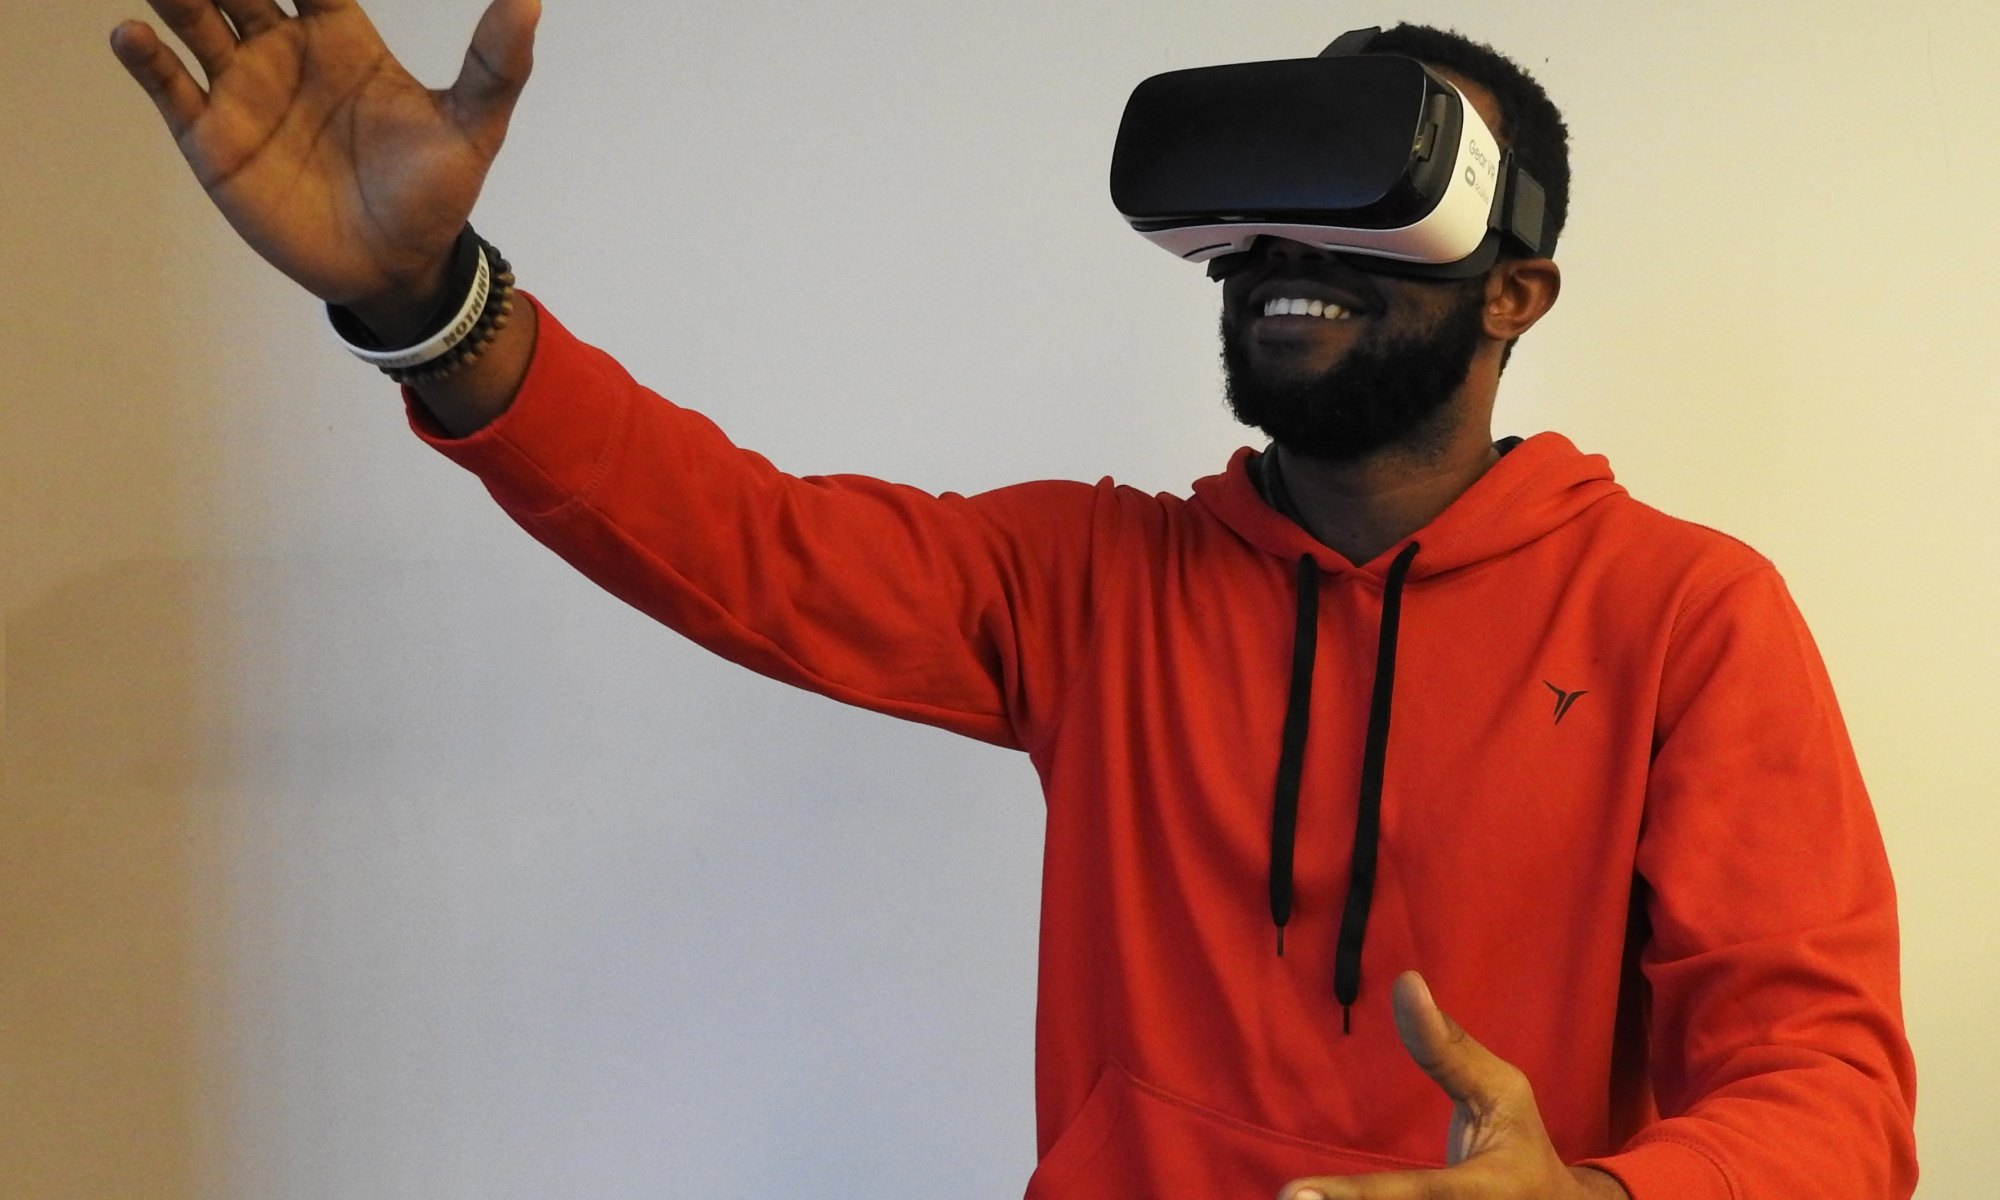 Black man in orange hoodie wearing white VR headset accepting his reality while lifting right hand